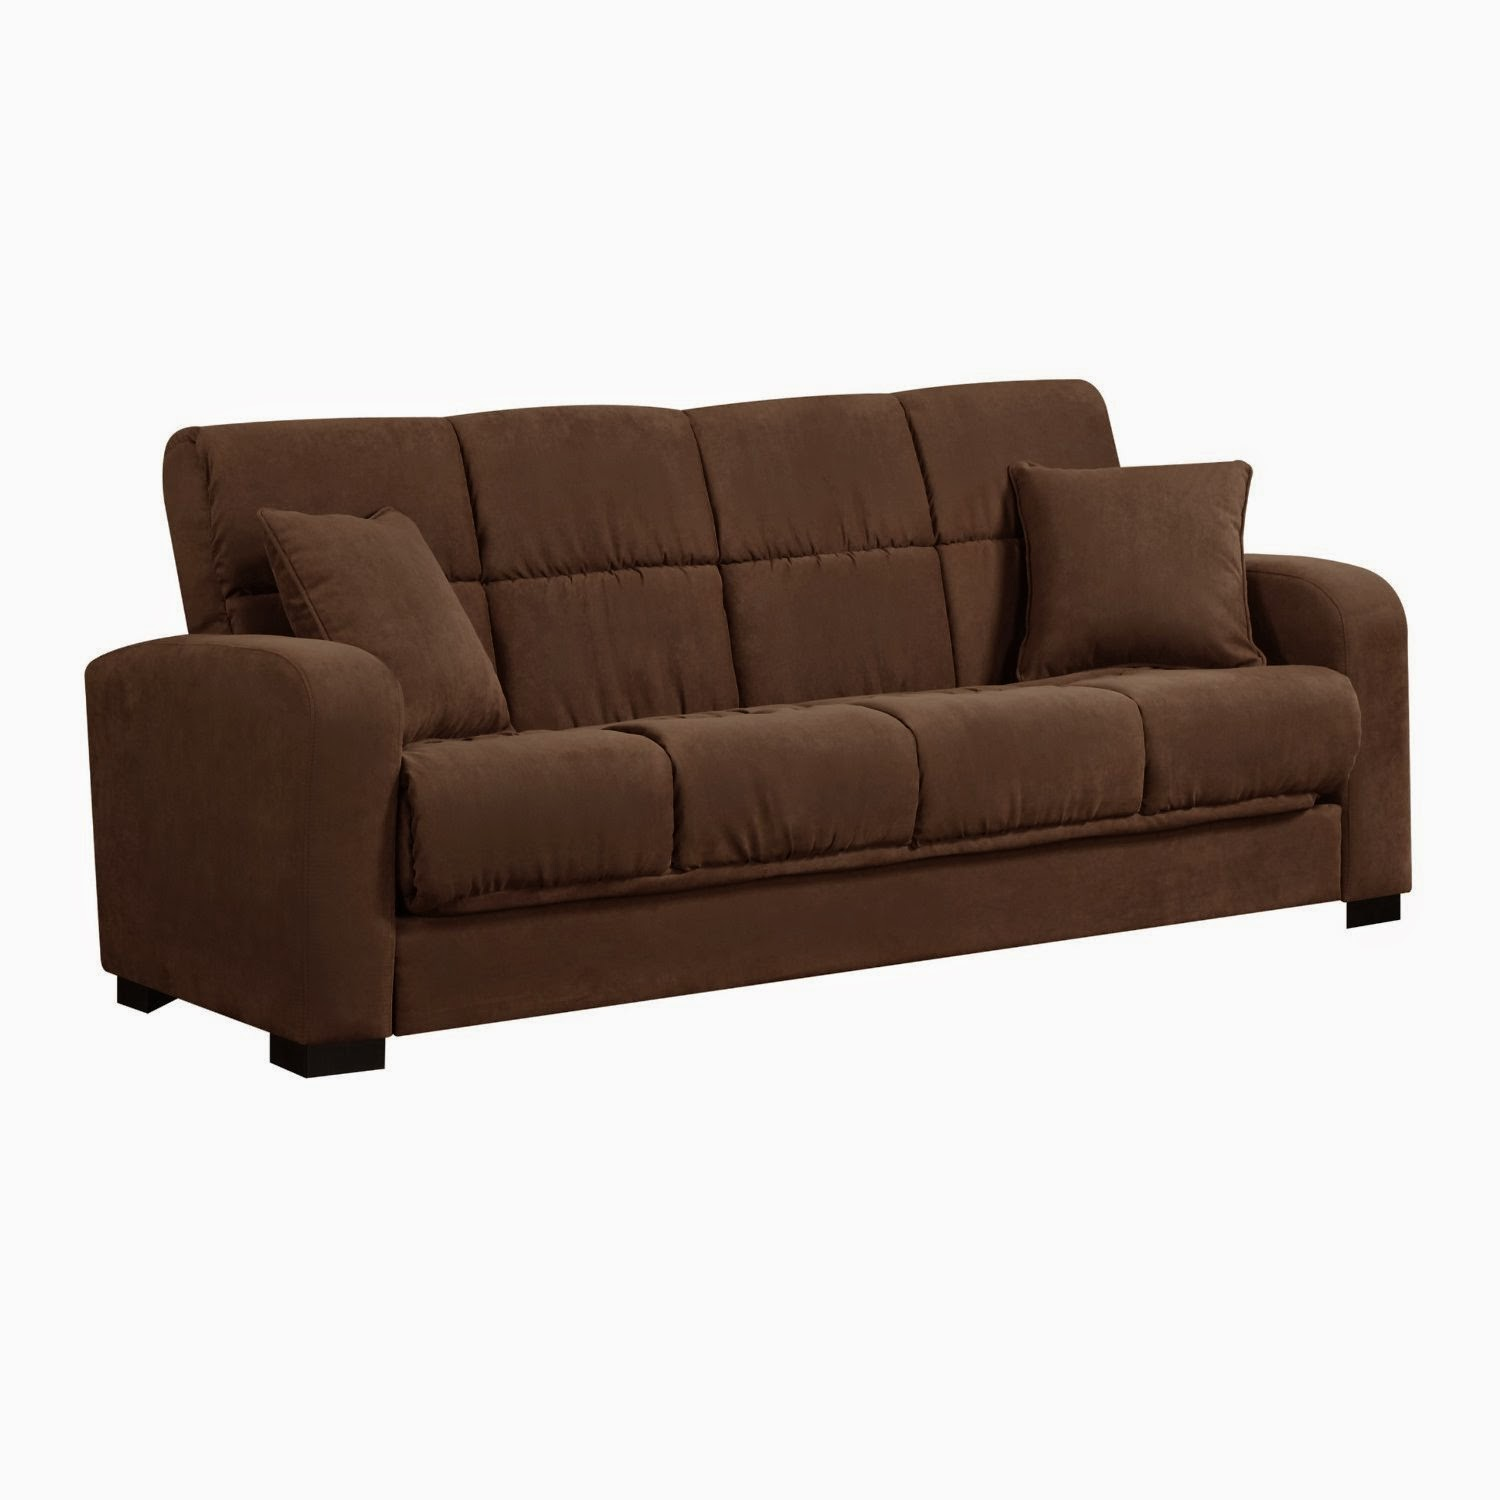 Bed sofas for sale Bed couches for sale